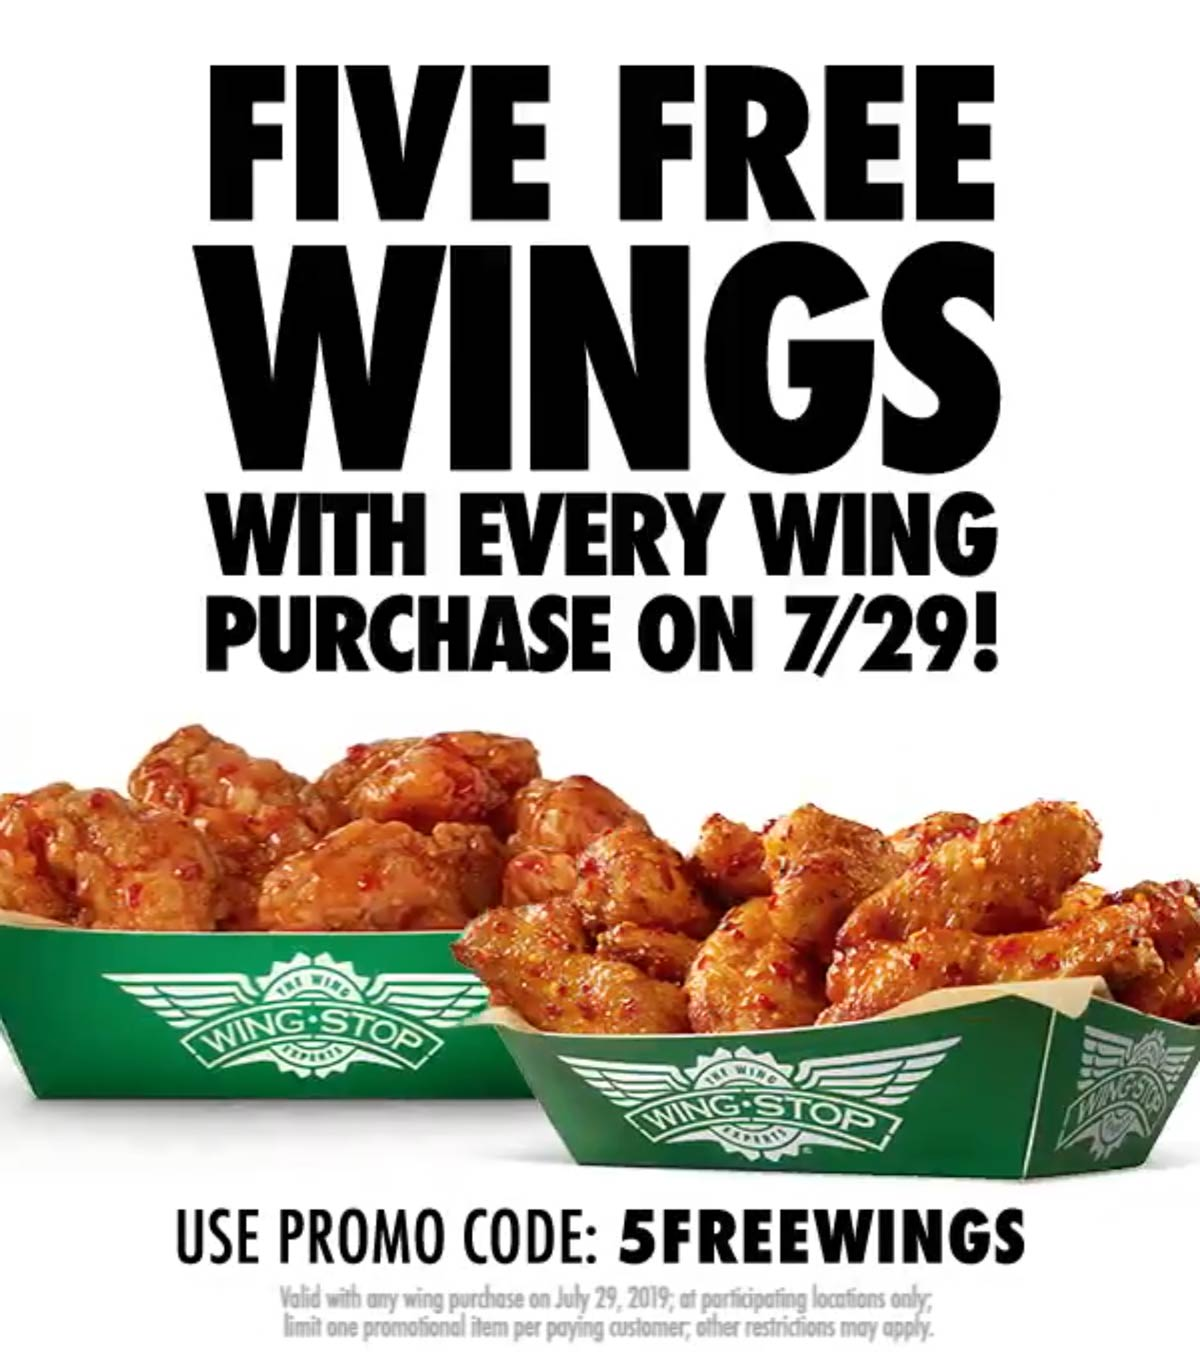 Wingstop Coupon November 2019 5 free wings with your wings today at Wingstop